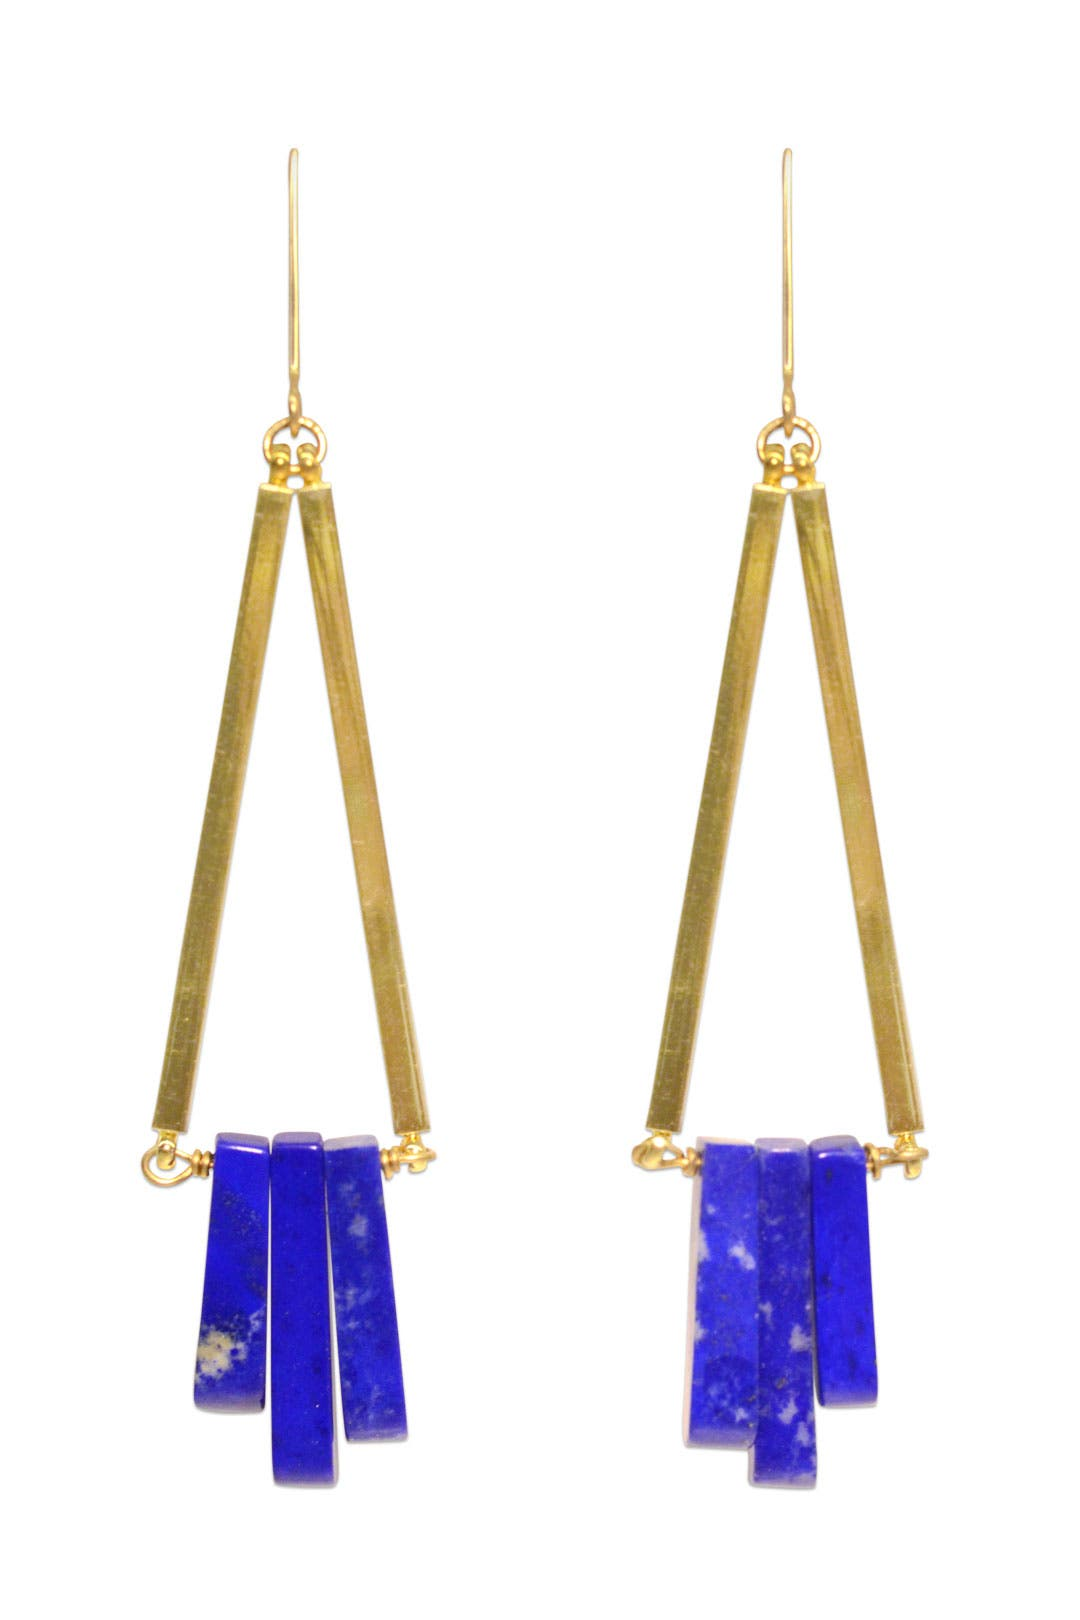 Edge of Glory Earrings by Gemma Redux